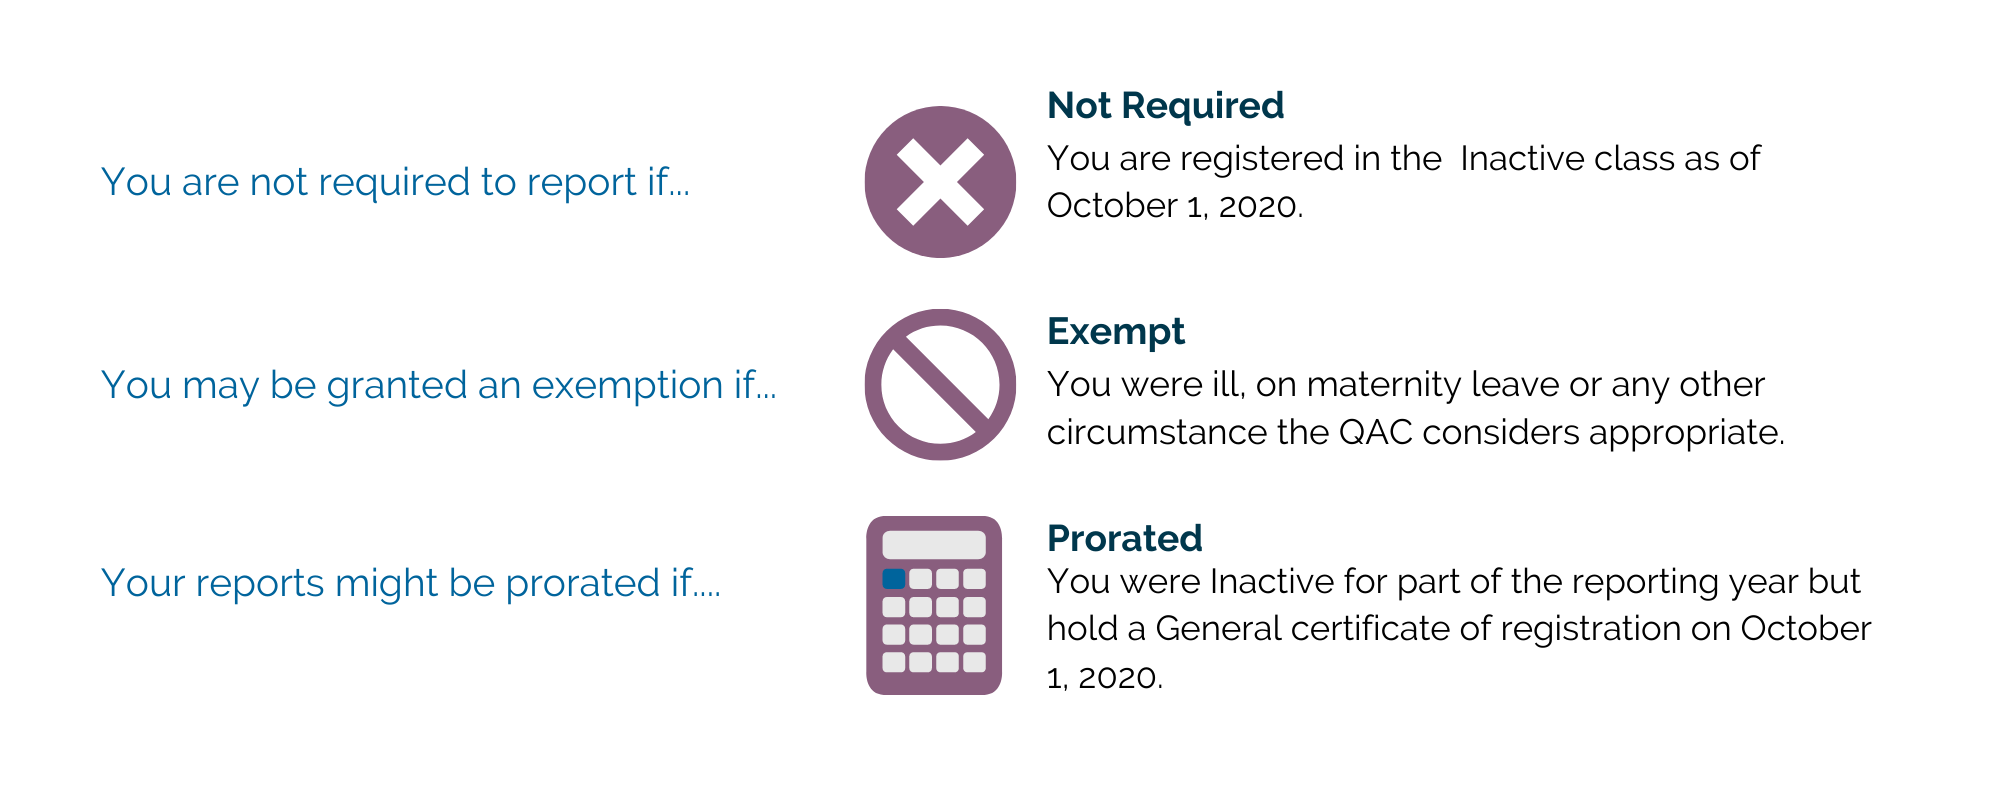 An image outlining information about the QAP requirements.  You are not required to report if you are registered in the Inactive Class as of October 1, 2020.  You may be granted an exemption if you were ill, on maternity leave or any other circumstance the QAC considers appropriate.  Your reports might be prorated if you were inactive for part of the reporting year but hold a general certificate of registration on October 1, 2020.